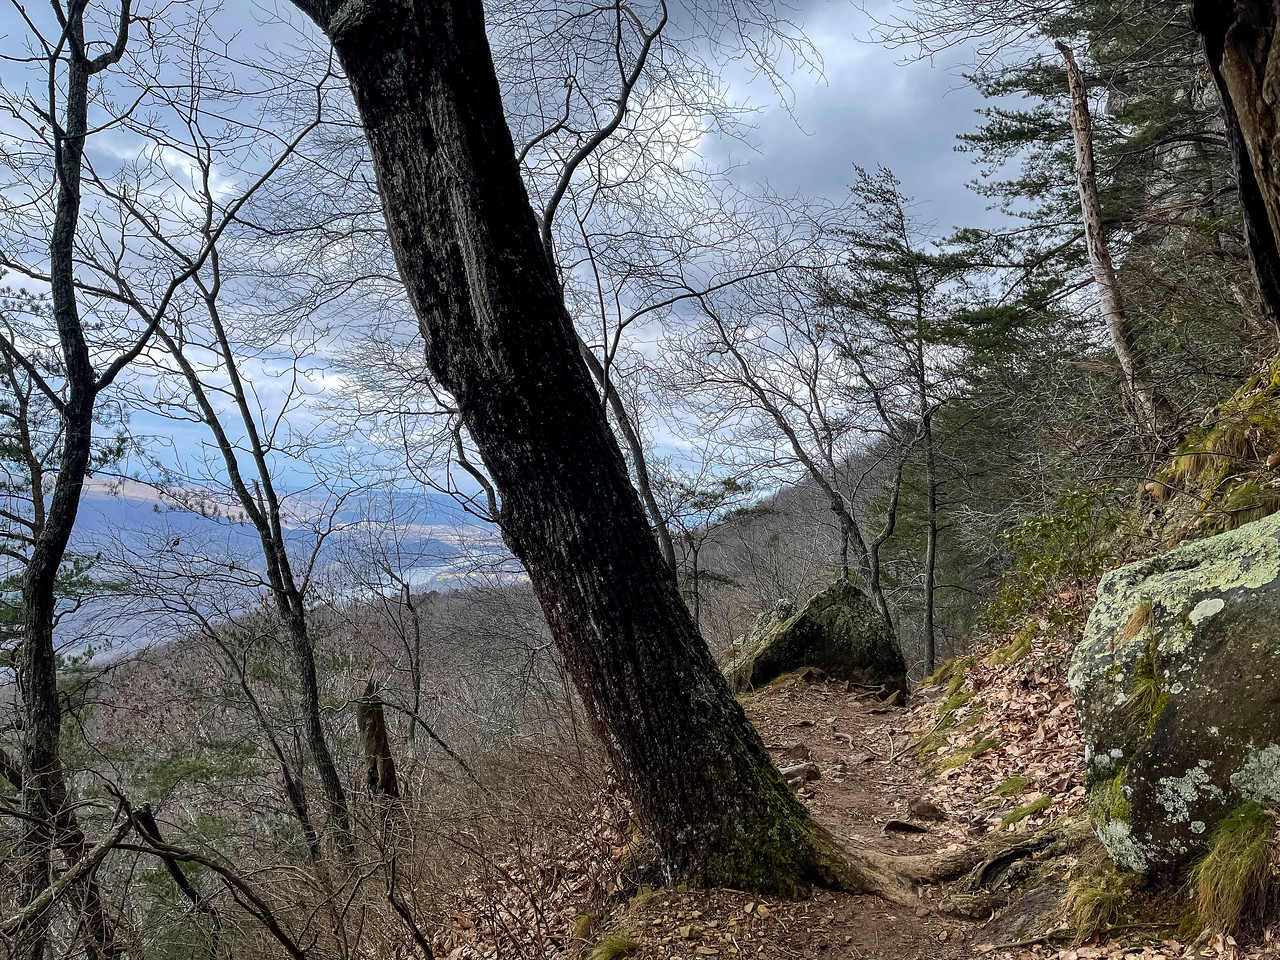 The trail narrows on the bluff with a view of the river and mountains in the distance.